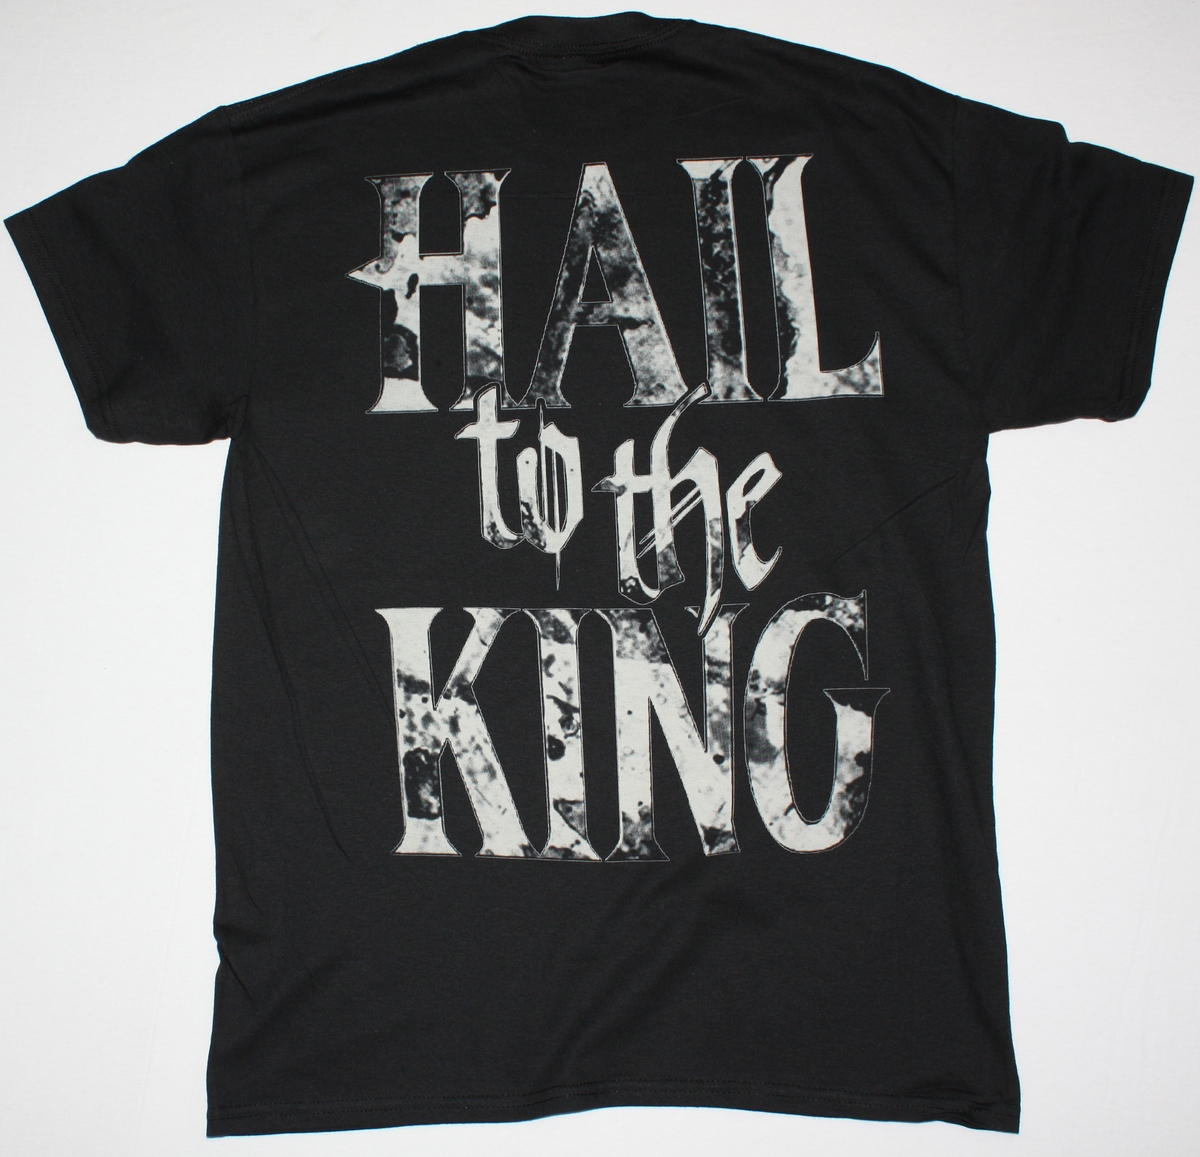 AVENGED SEVENFOLD HAIL TO THE KING SINGLE ARTWORK NEW BLACK T-SHIRT